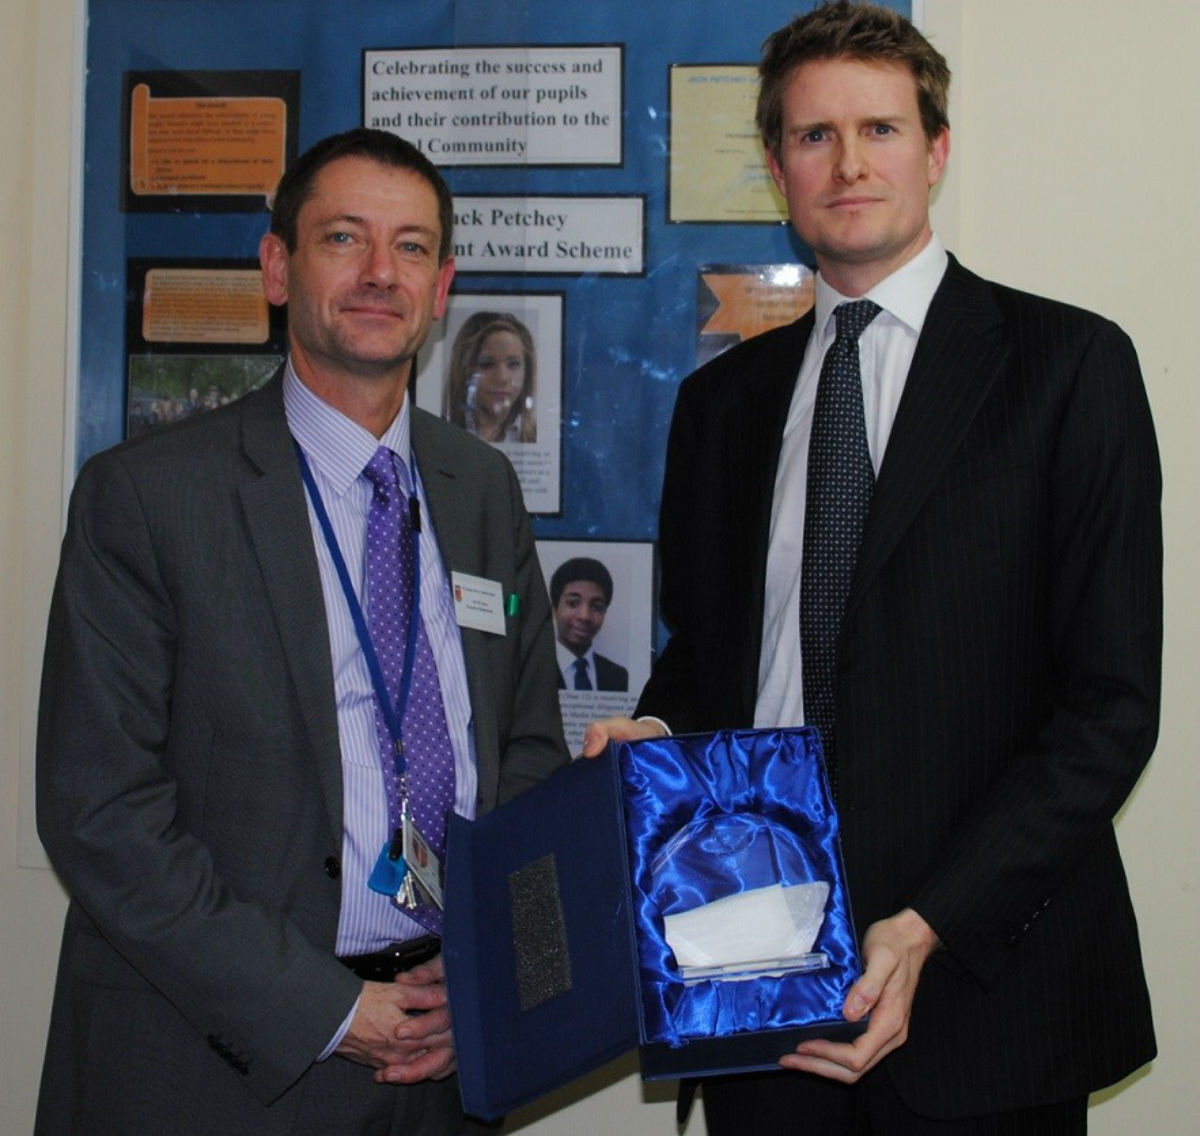 Tristan Hunt MP, the shadow education secretary, praised the exe